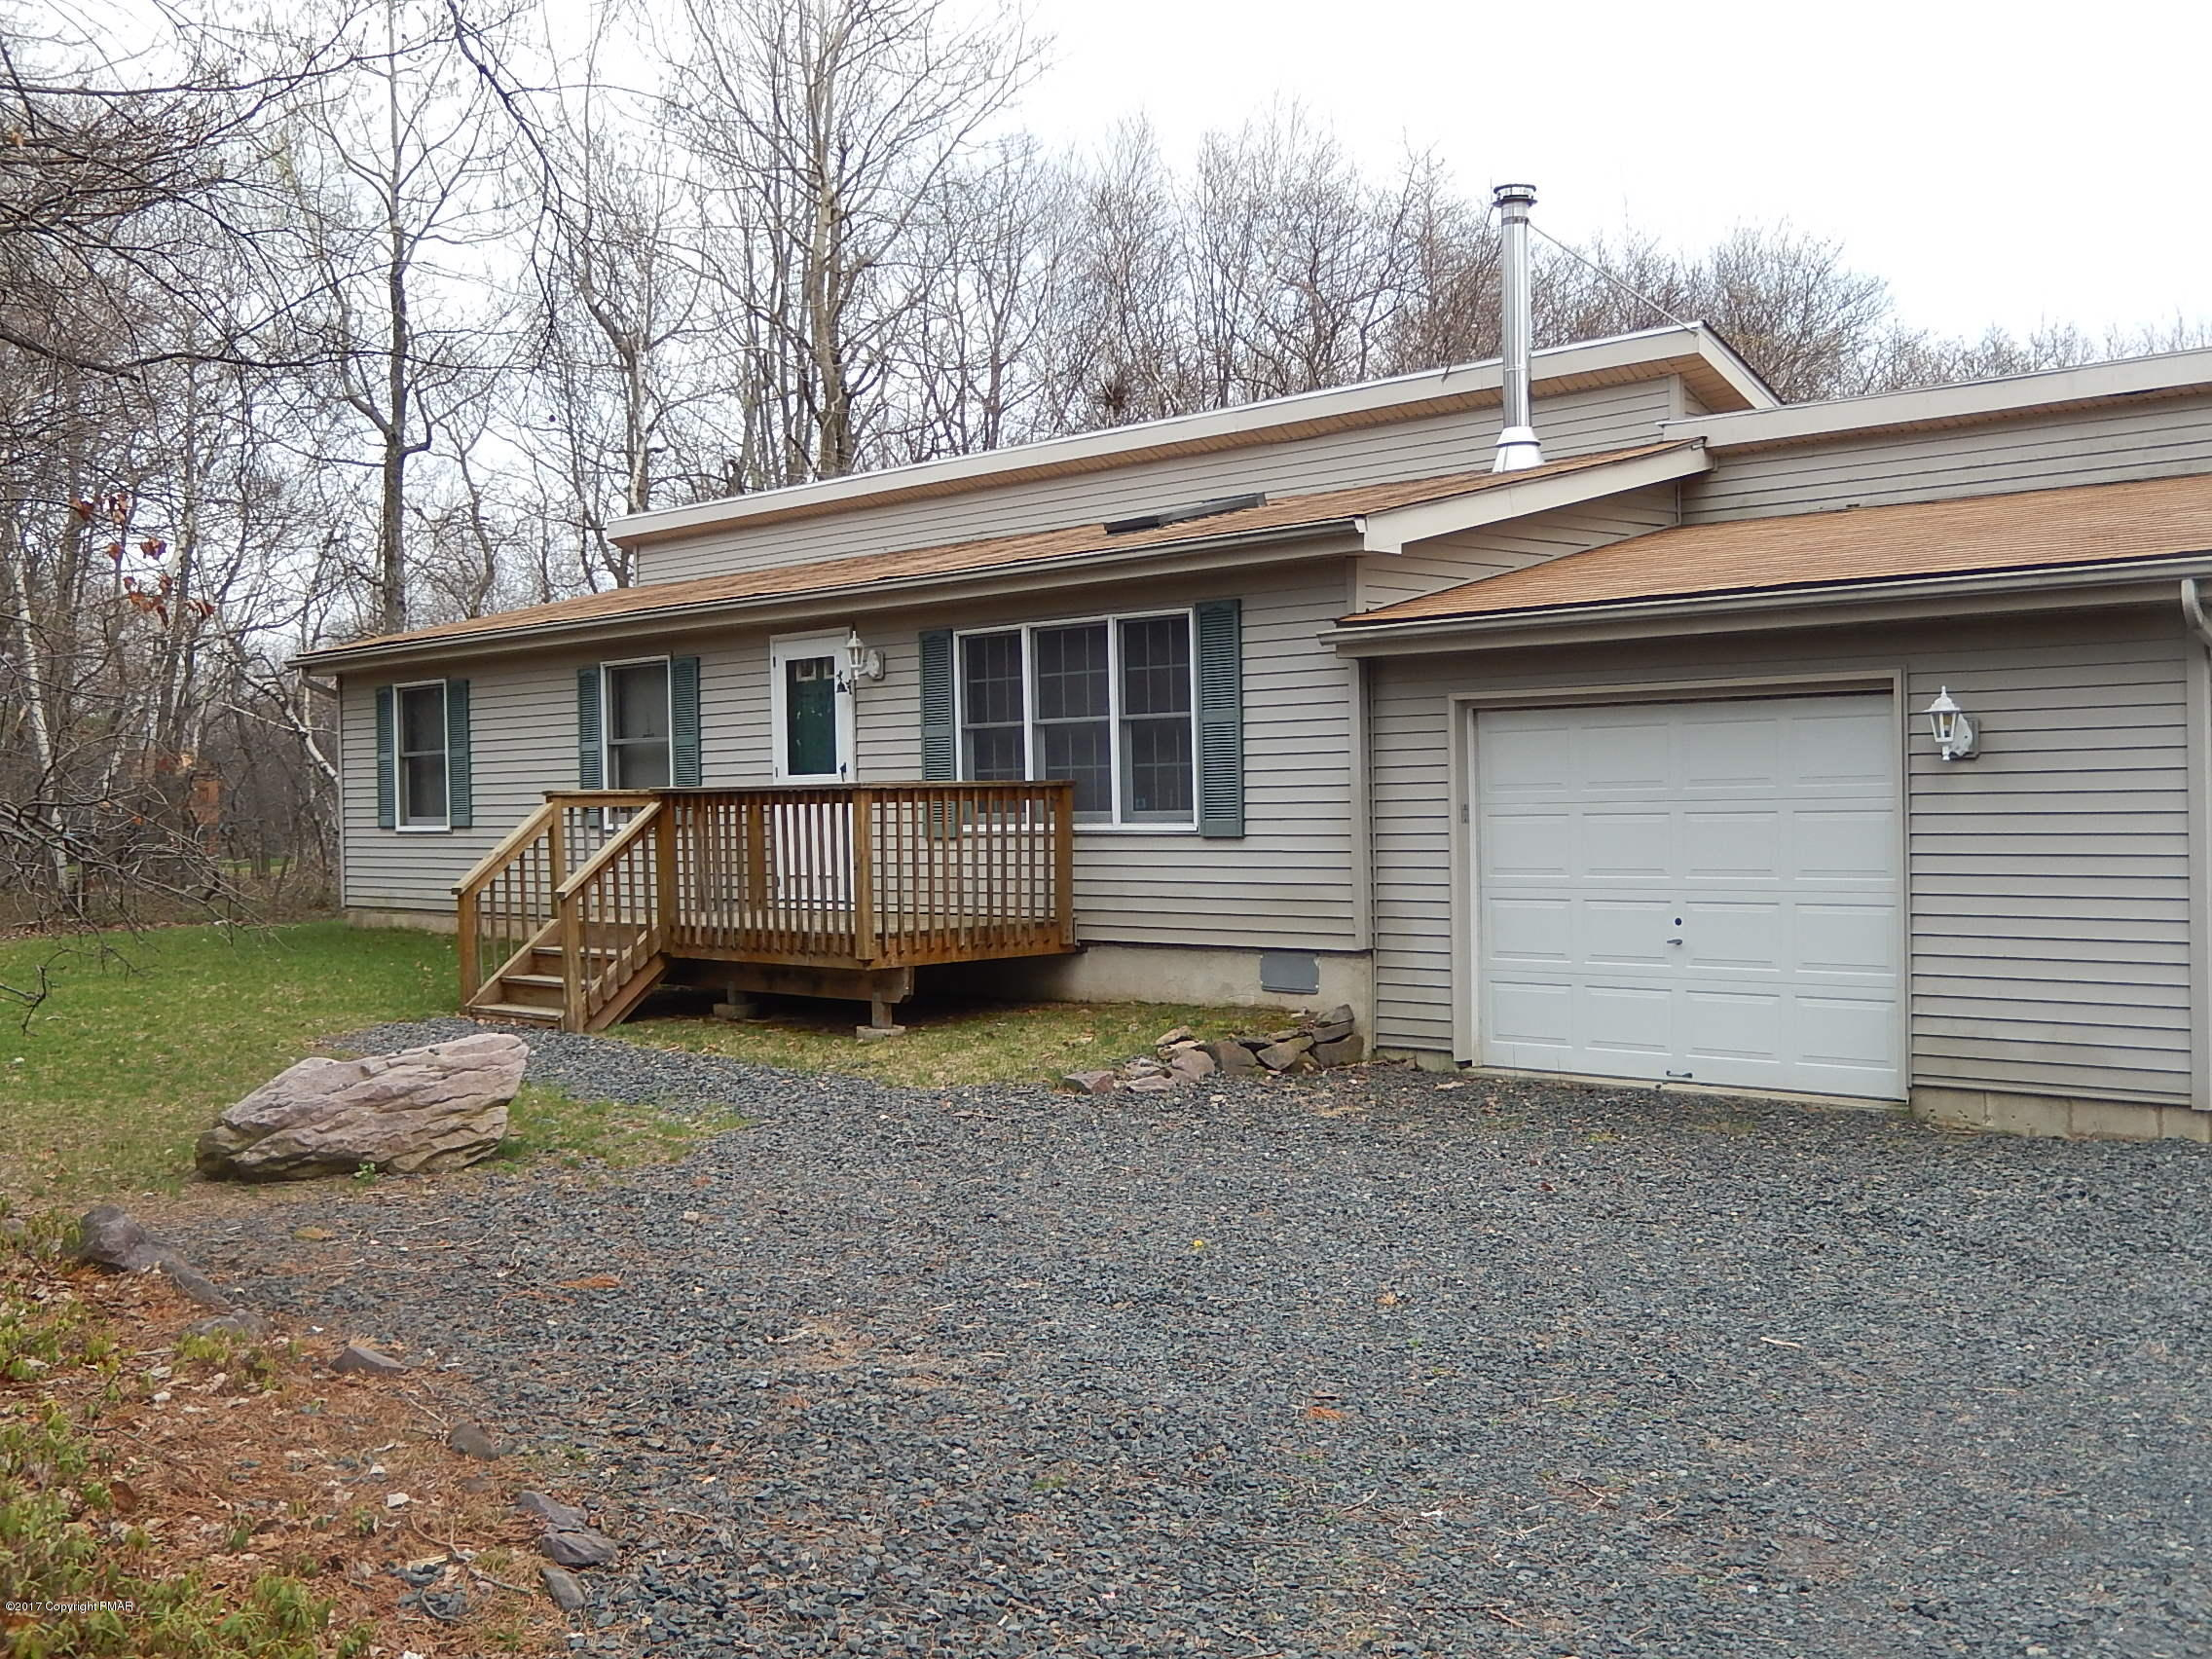 144 Lower Notch Rd, Albrightsville, PA 18210